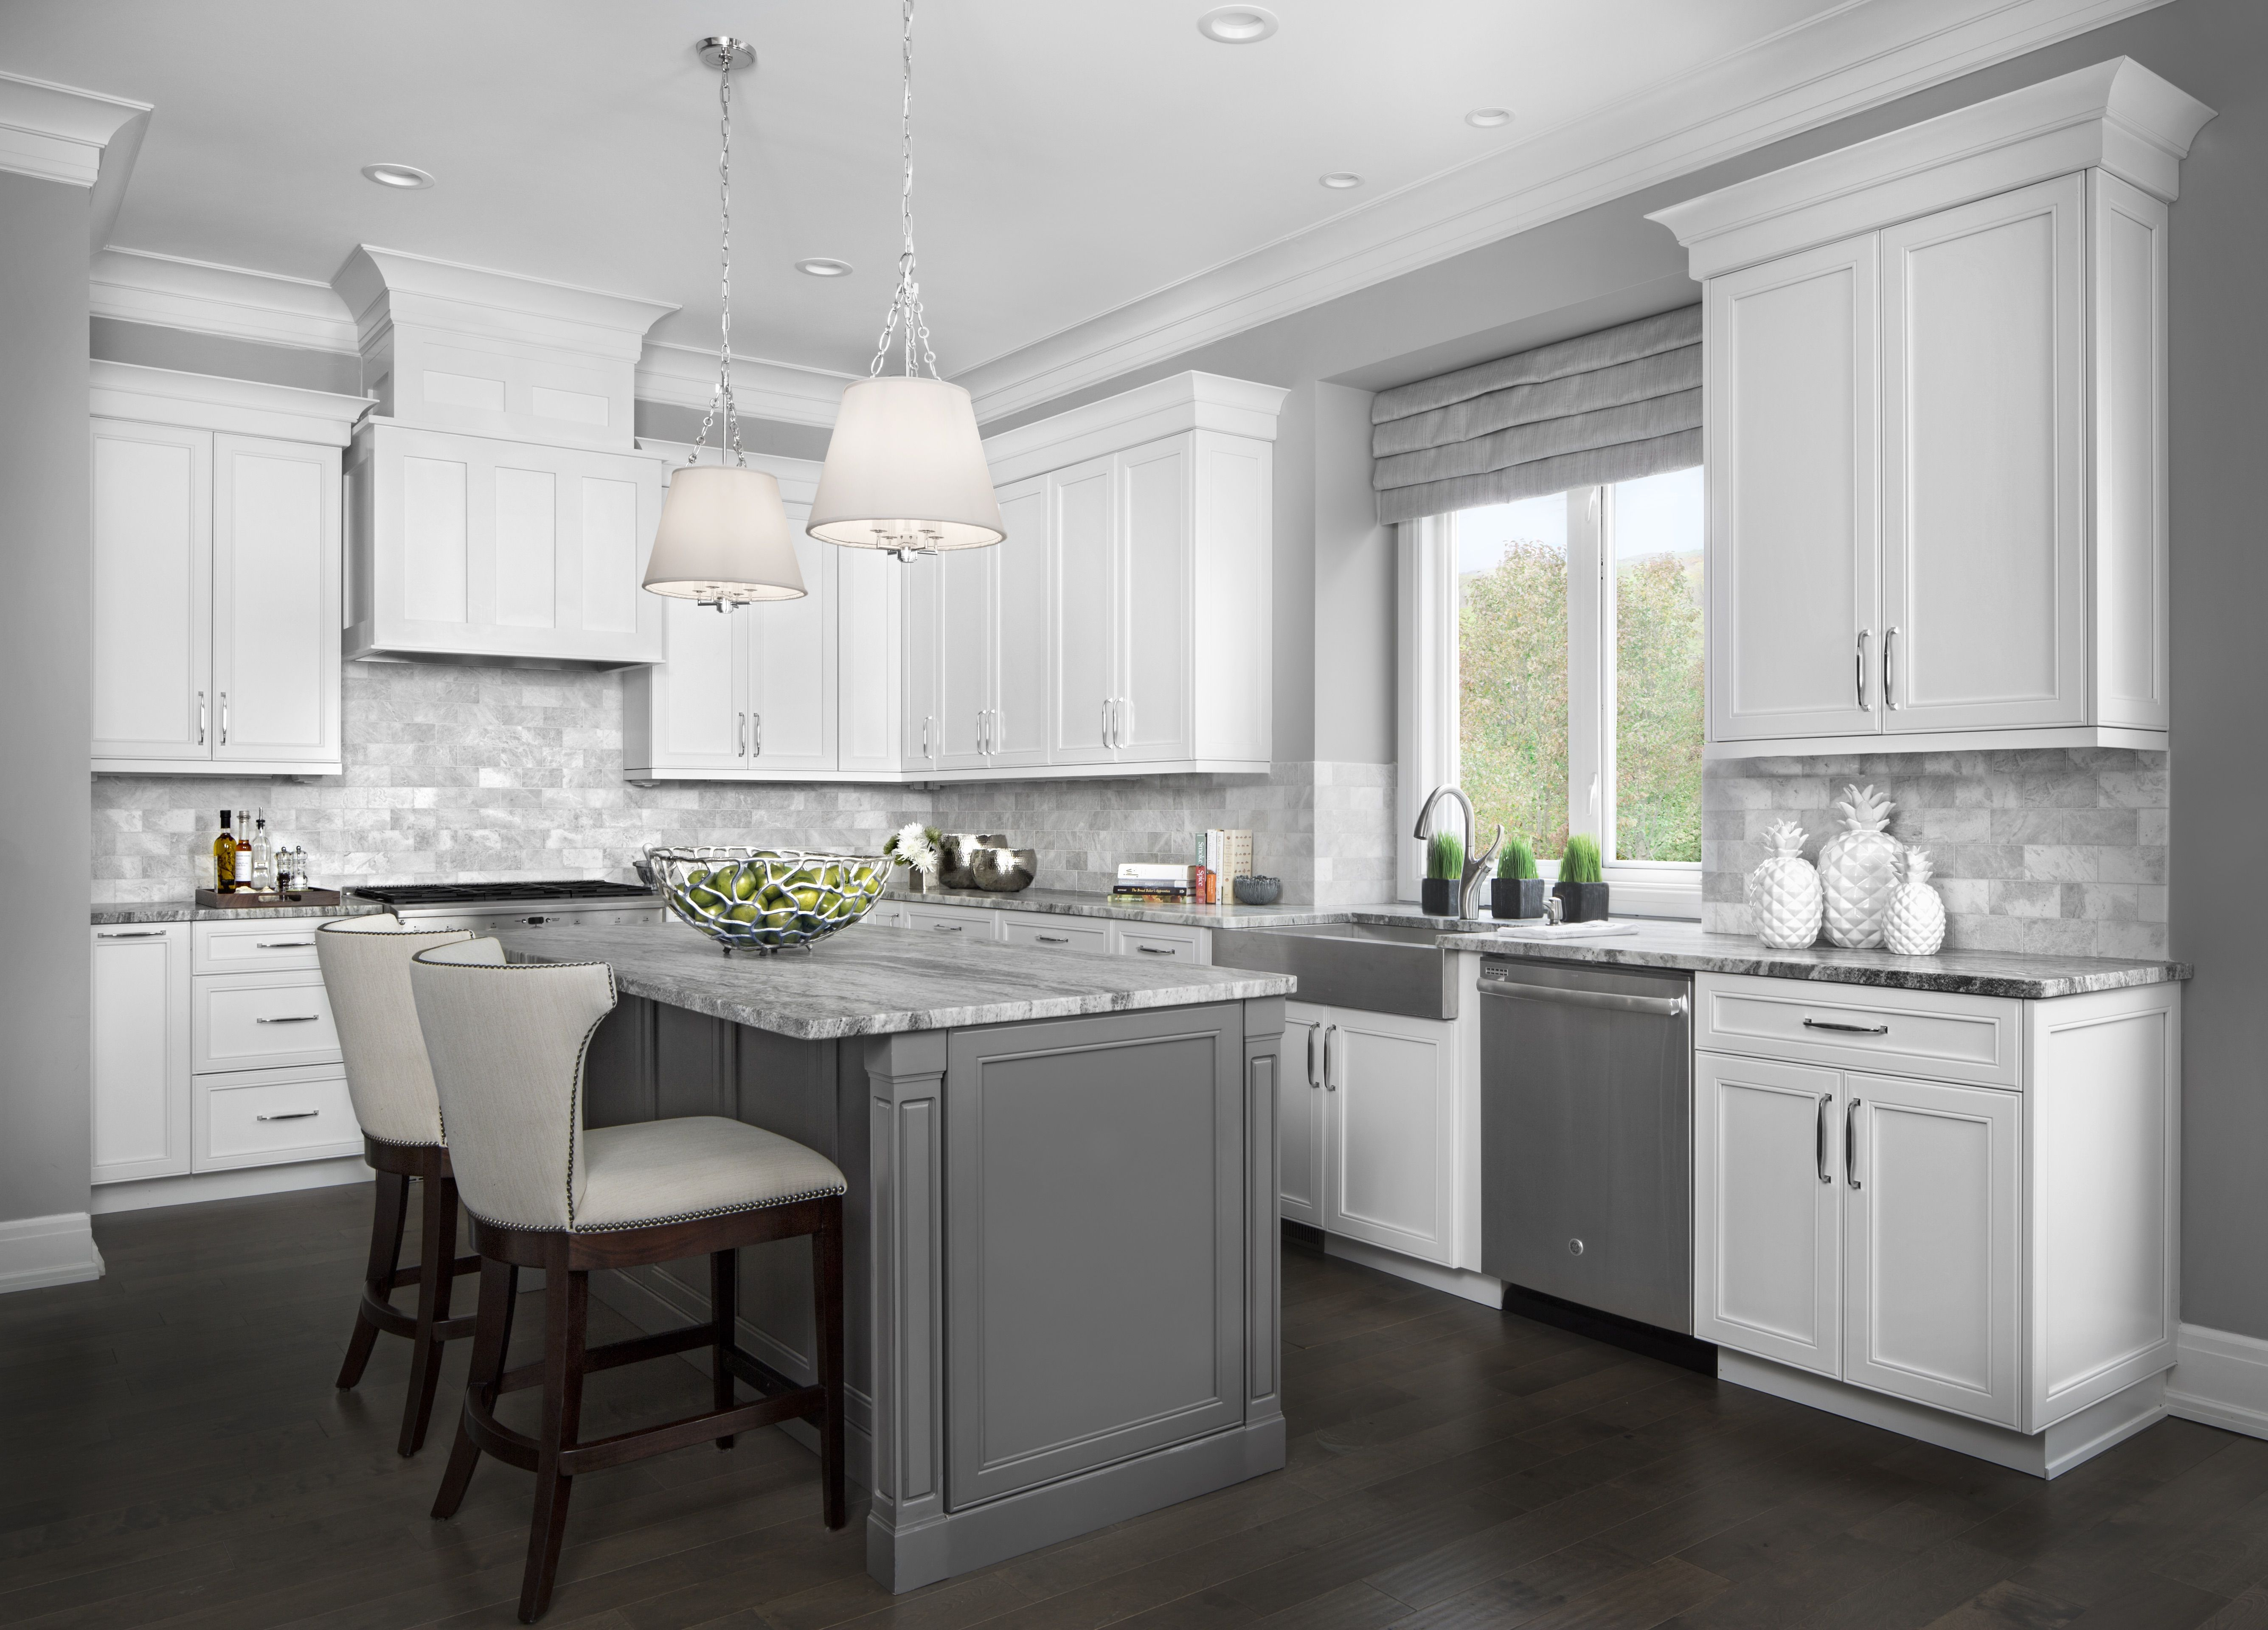 Simple And Elegant This Kitchen Was Wonderfully Designed By Lafata Cabinets Kitchen Design Small Kitchen Remodel Cost Kitchen Remodeling Projects